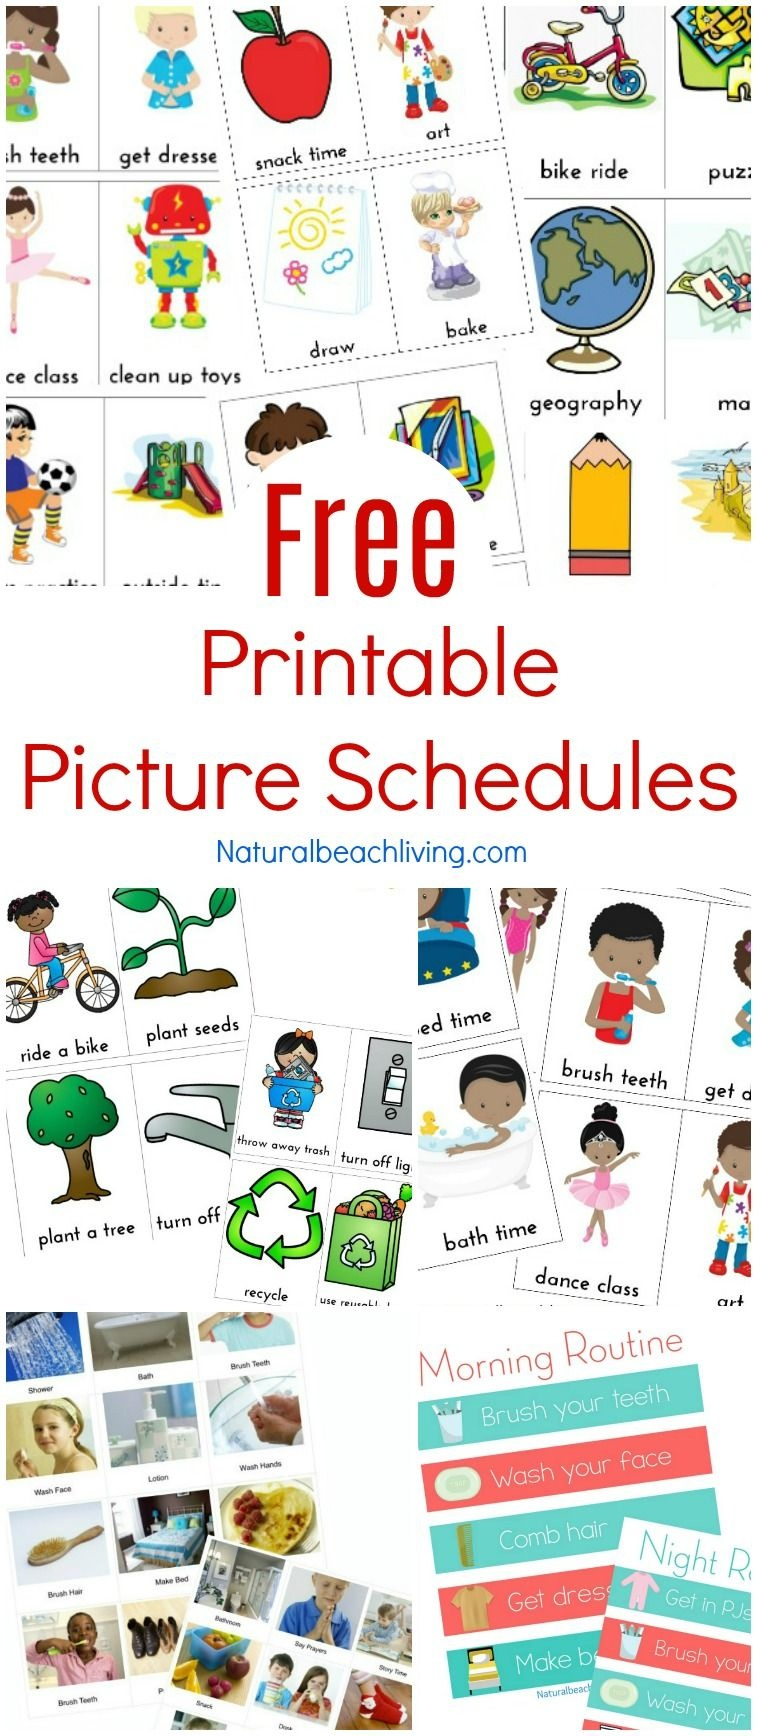 Free Printable Picture Schedule Cards - Visual Schedule Printables - To Have And To Hold Your Hair Back Free Printable